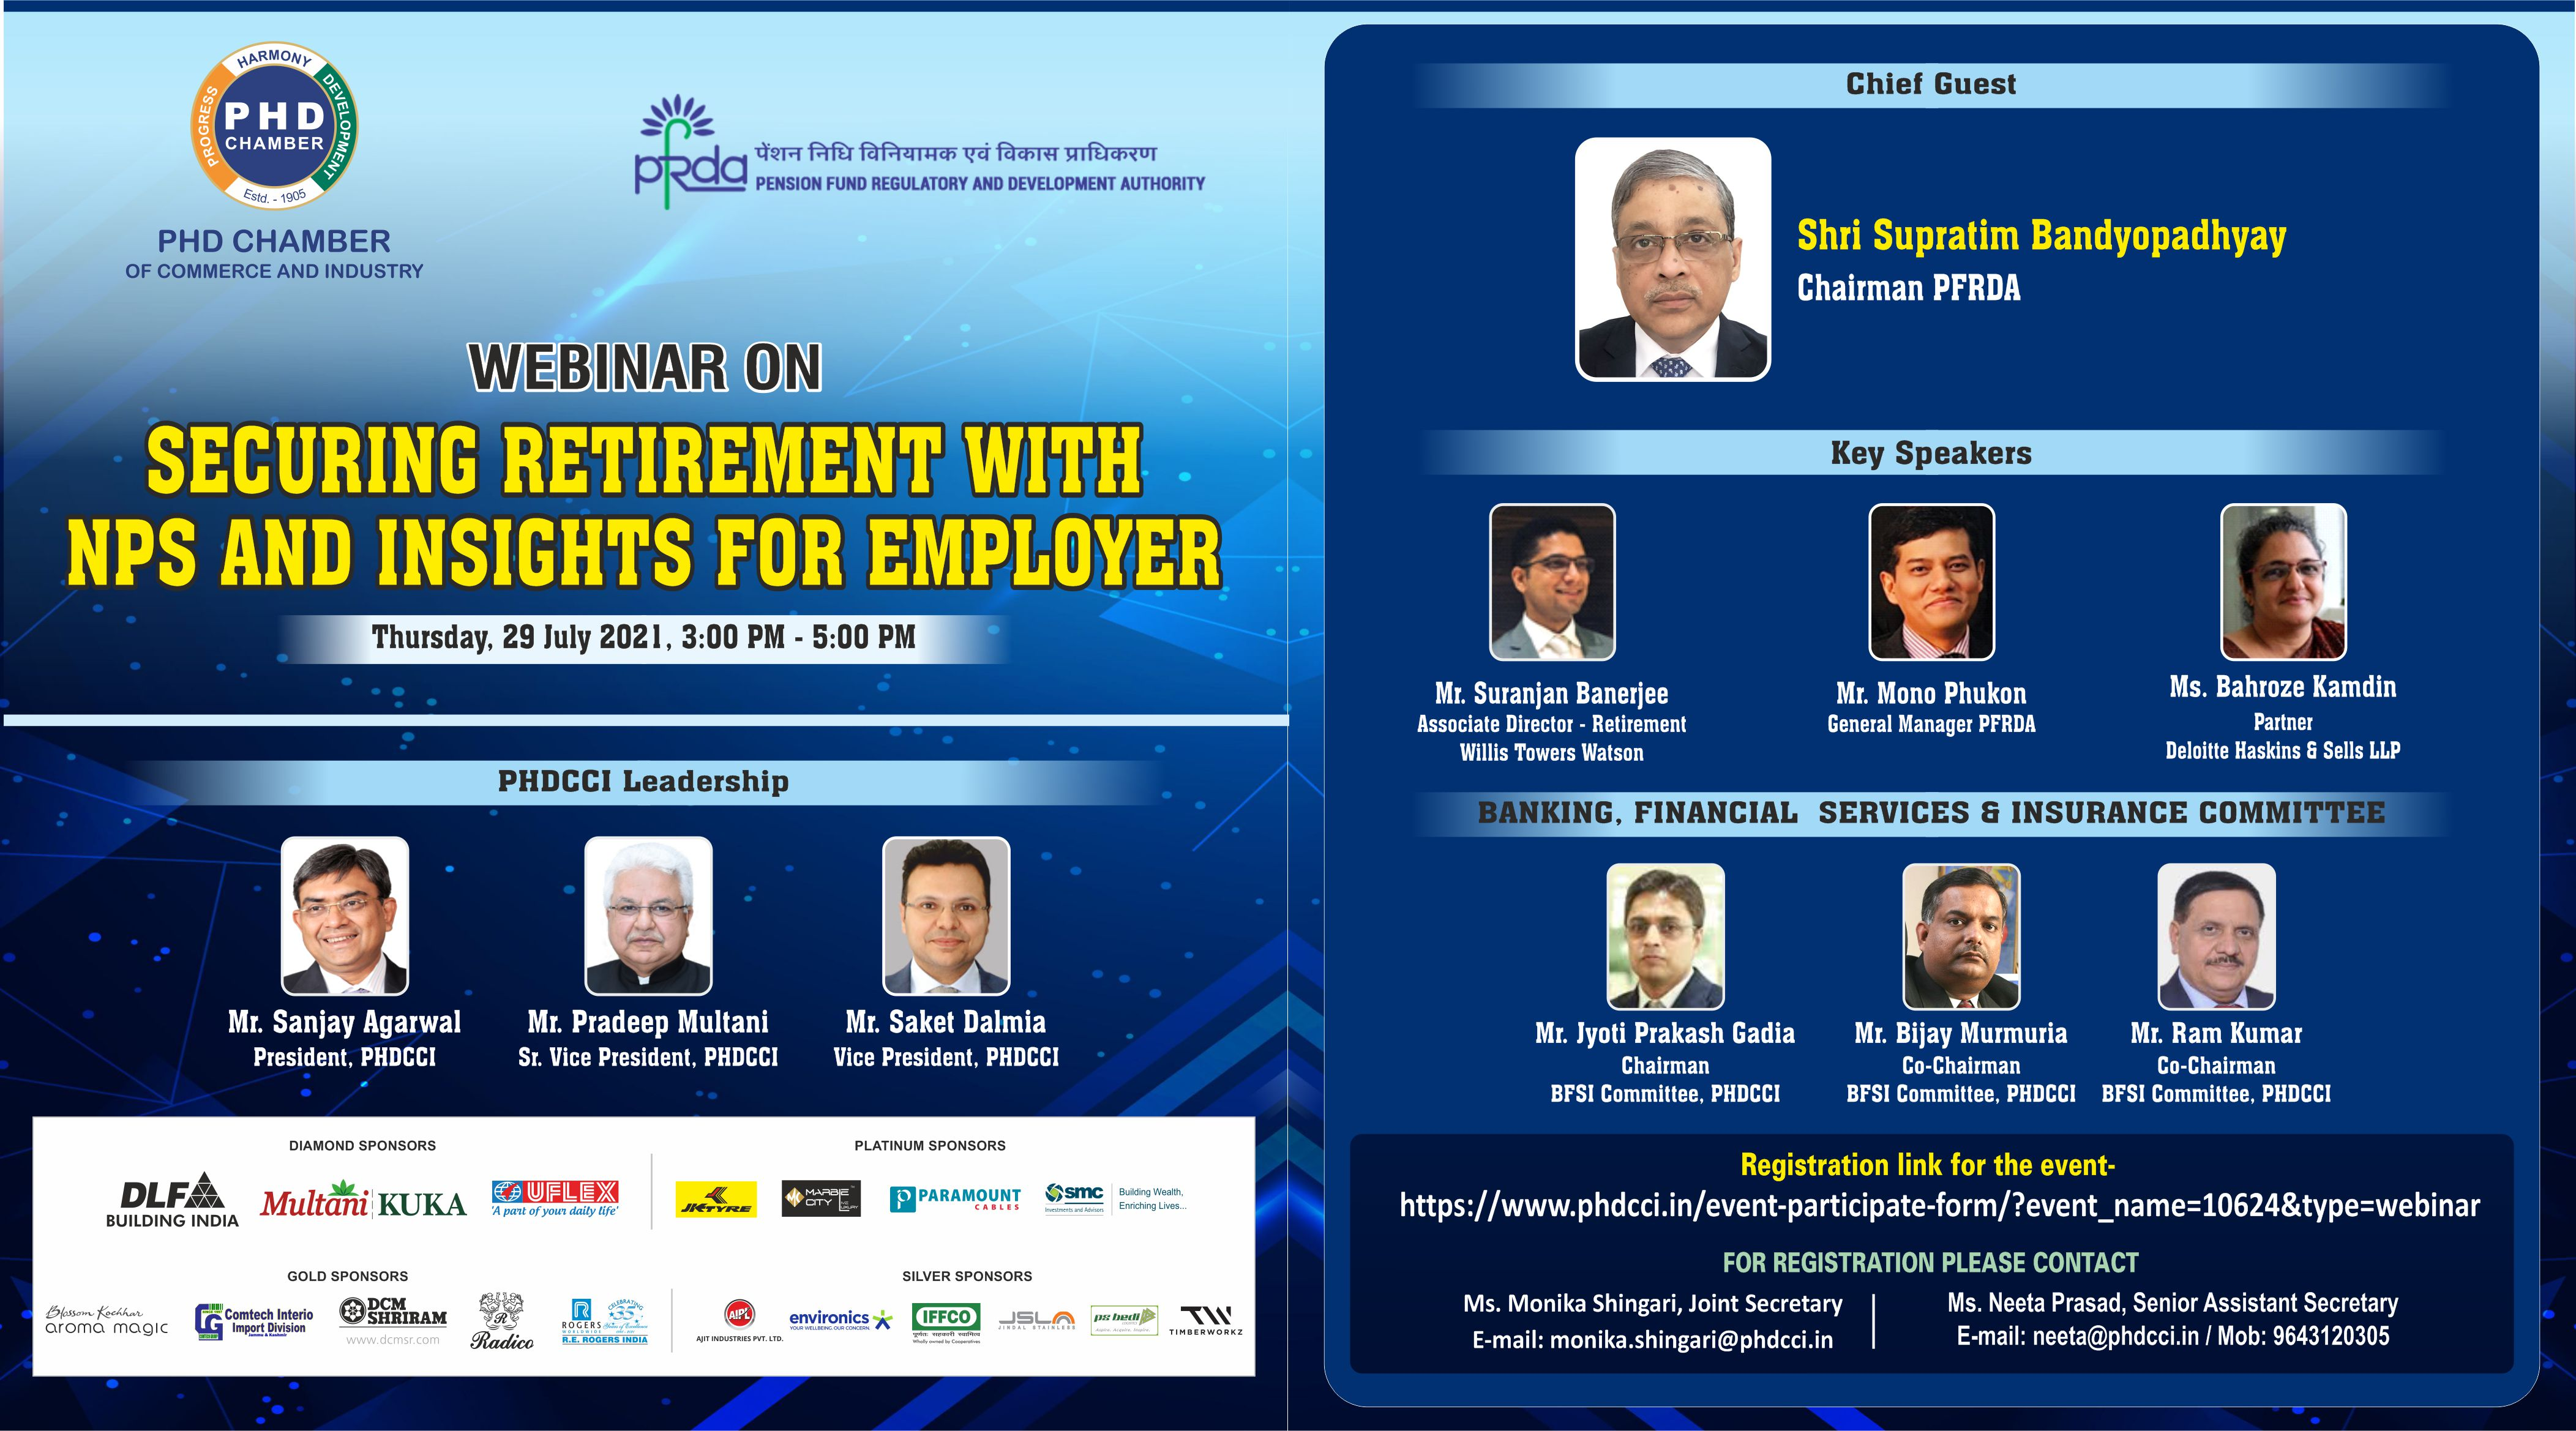 webinar on Securing Retirement with NPS and Insights for employer scheduled